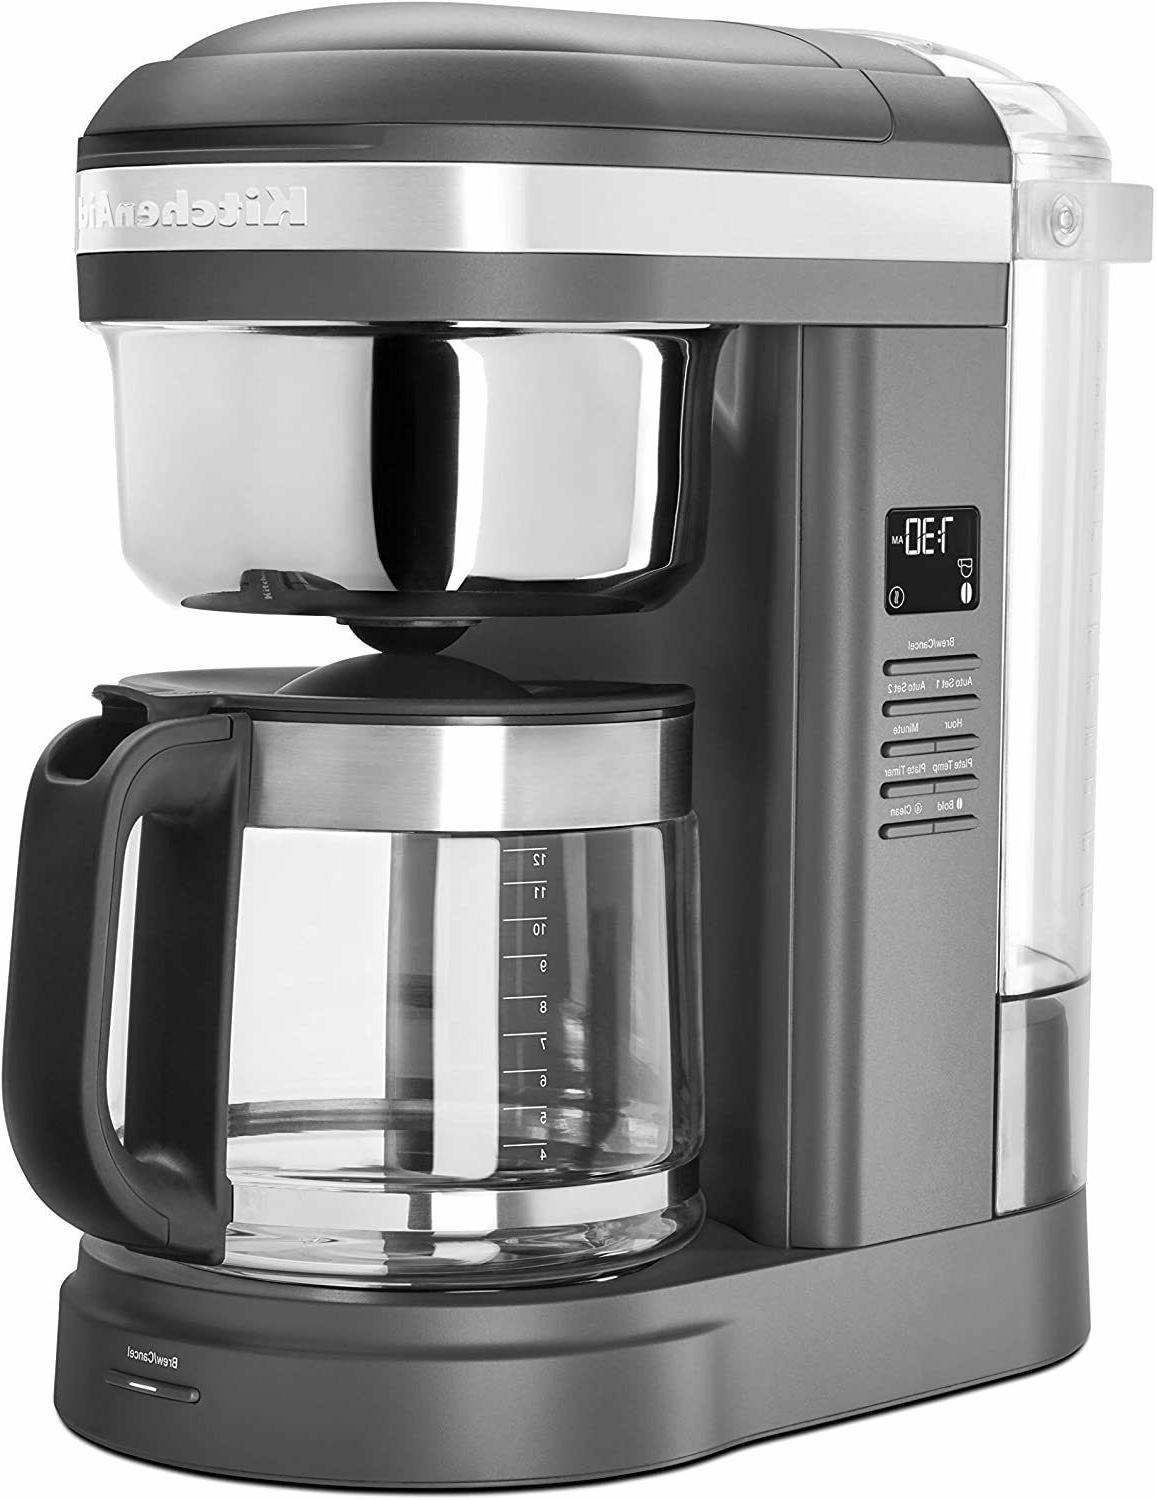 12 cup drip coffee maker with spiral